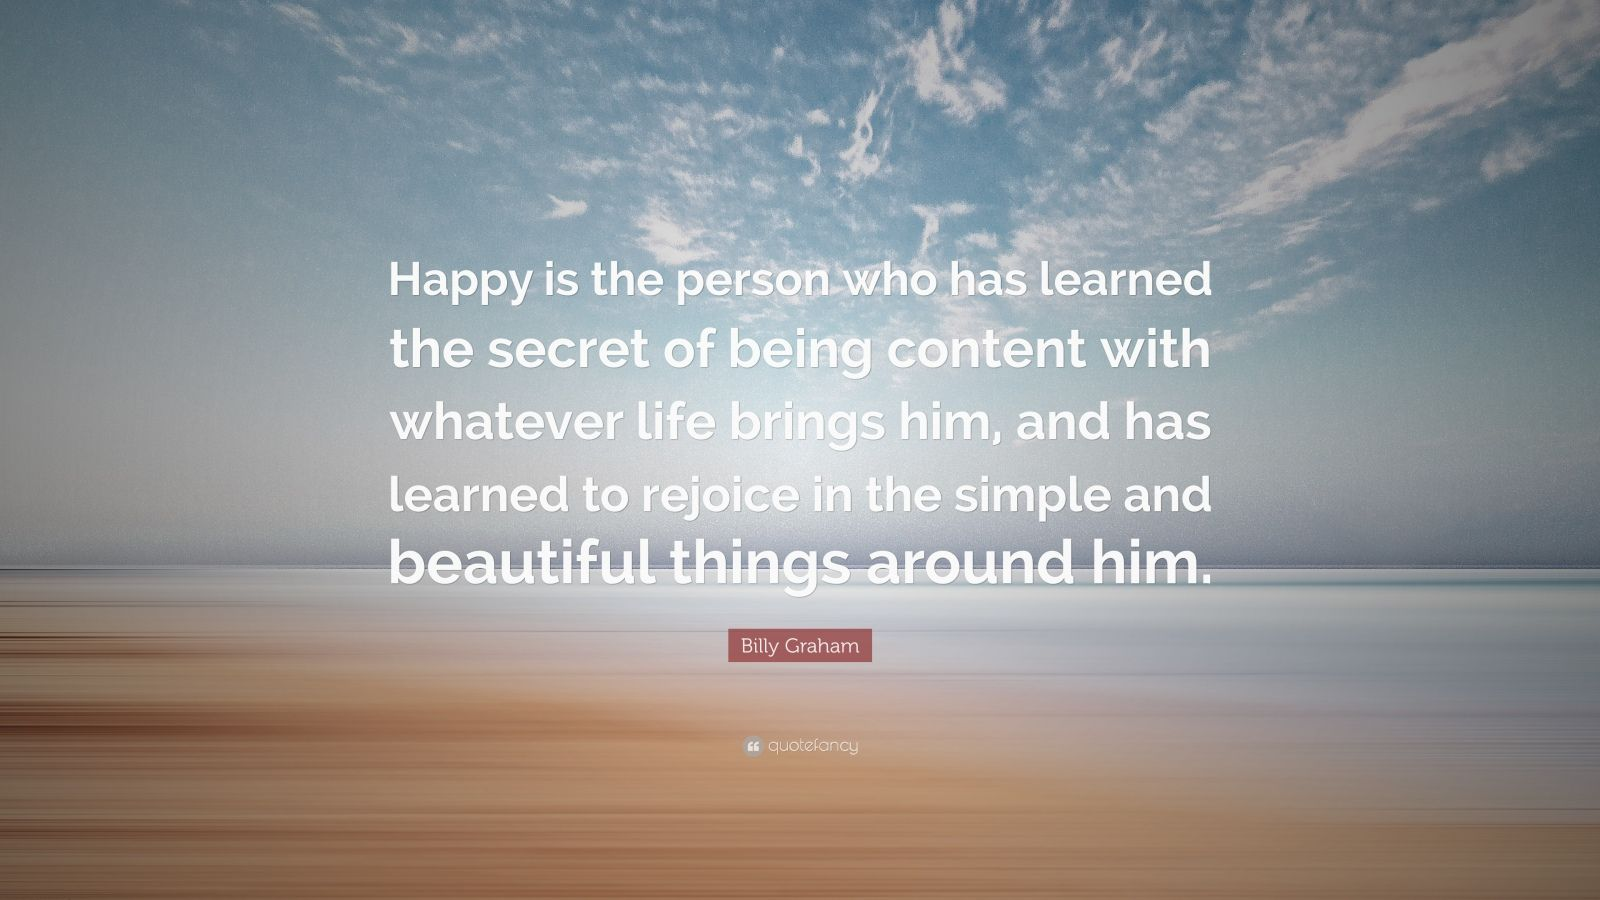 """Billy Graham Quote: """"Happy is the person who has learned the secret of being content with whatever life brings him, and has learned to rejoice in the simple and beautiful things around him."""""""